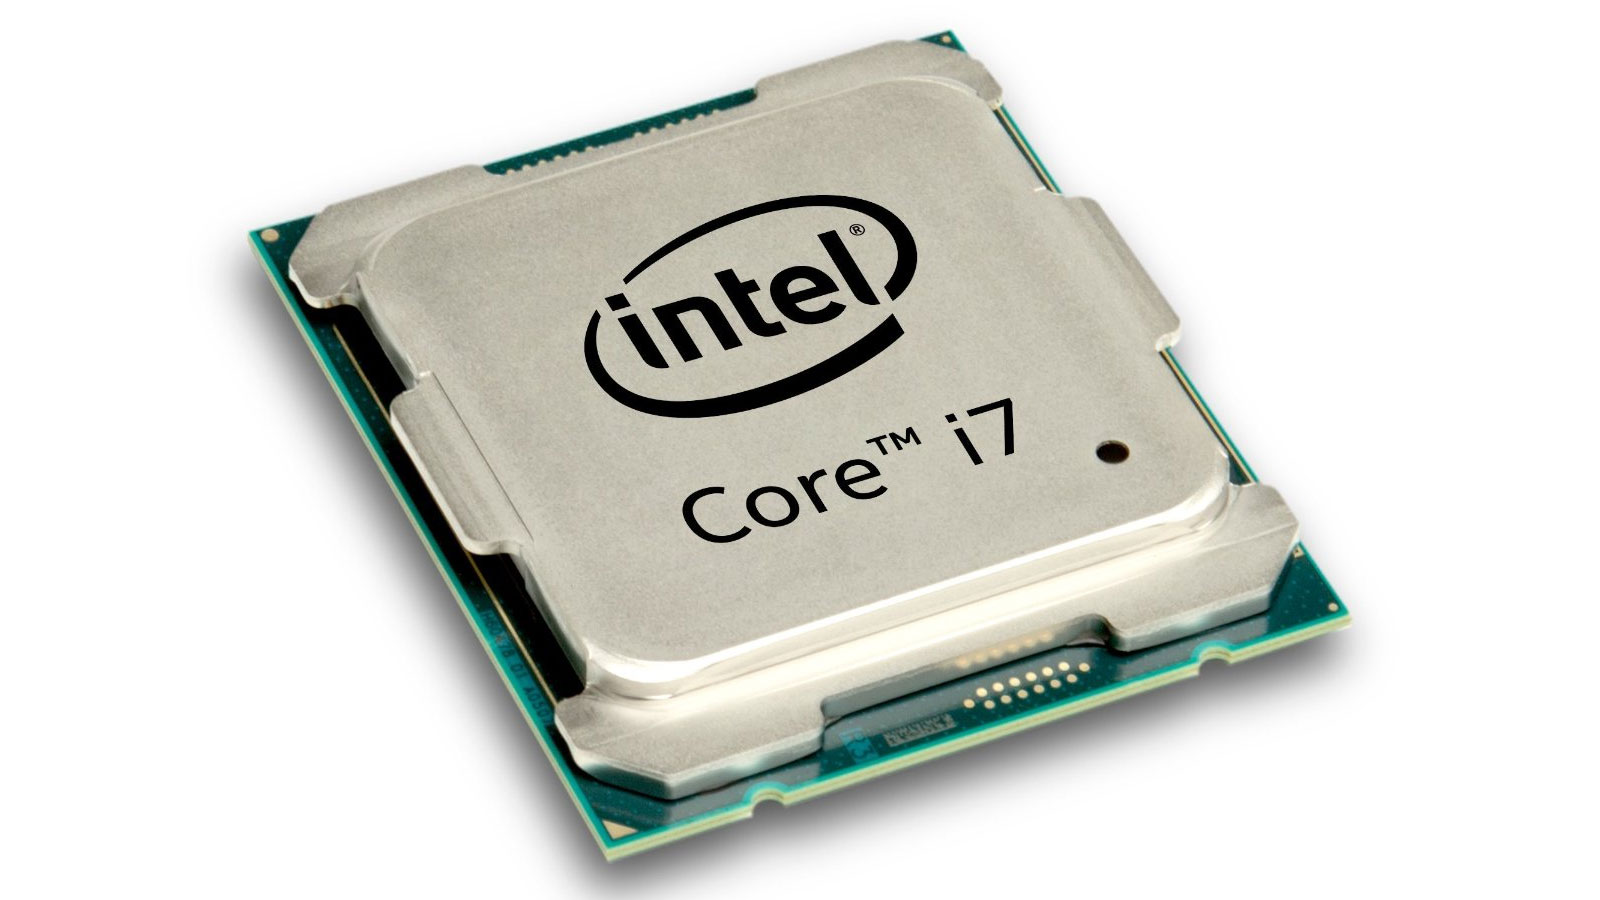 Amazing Processor Pictures & Backgrounds